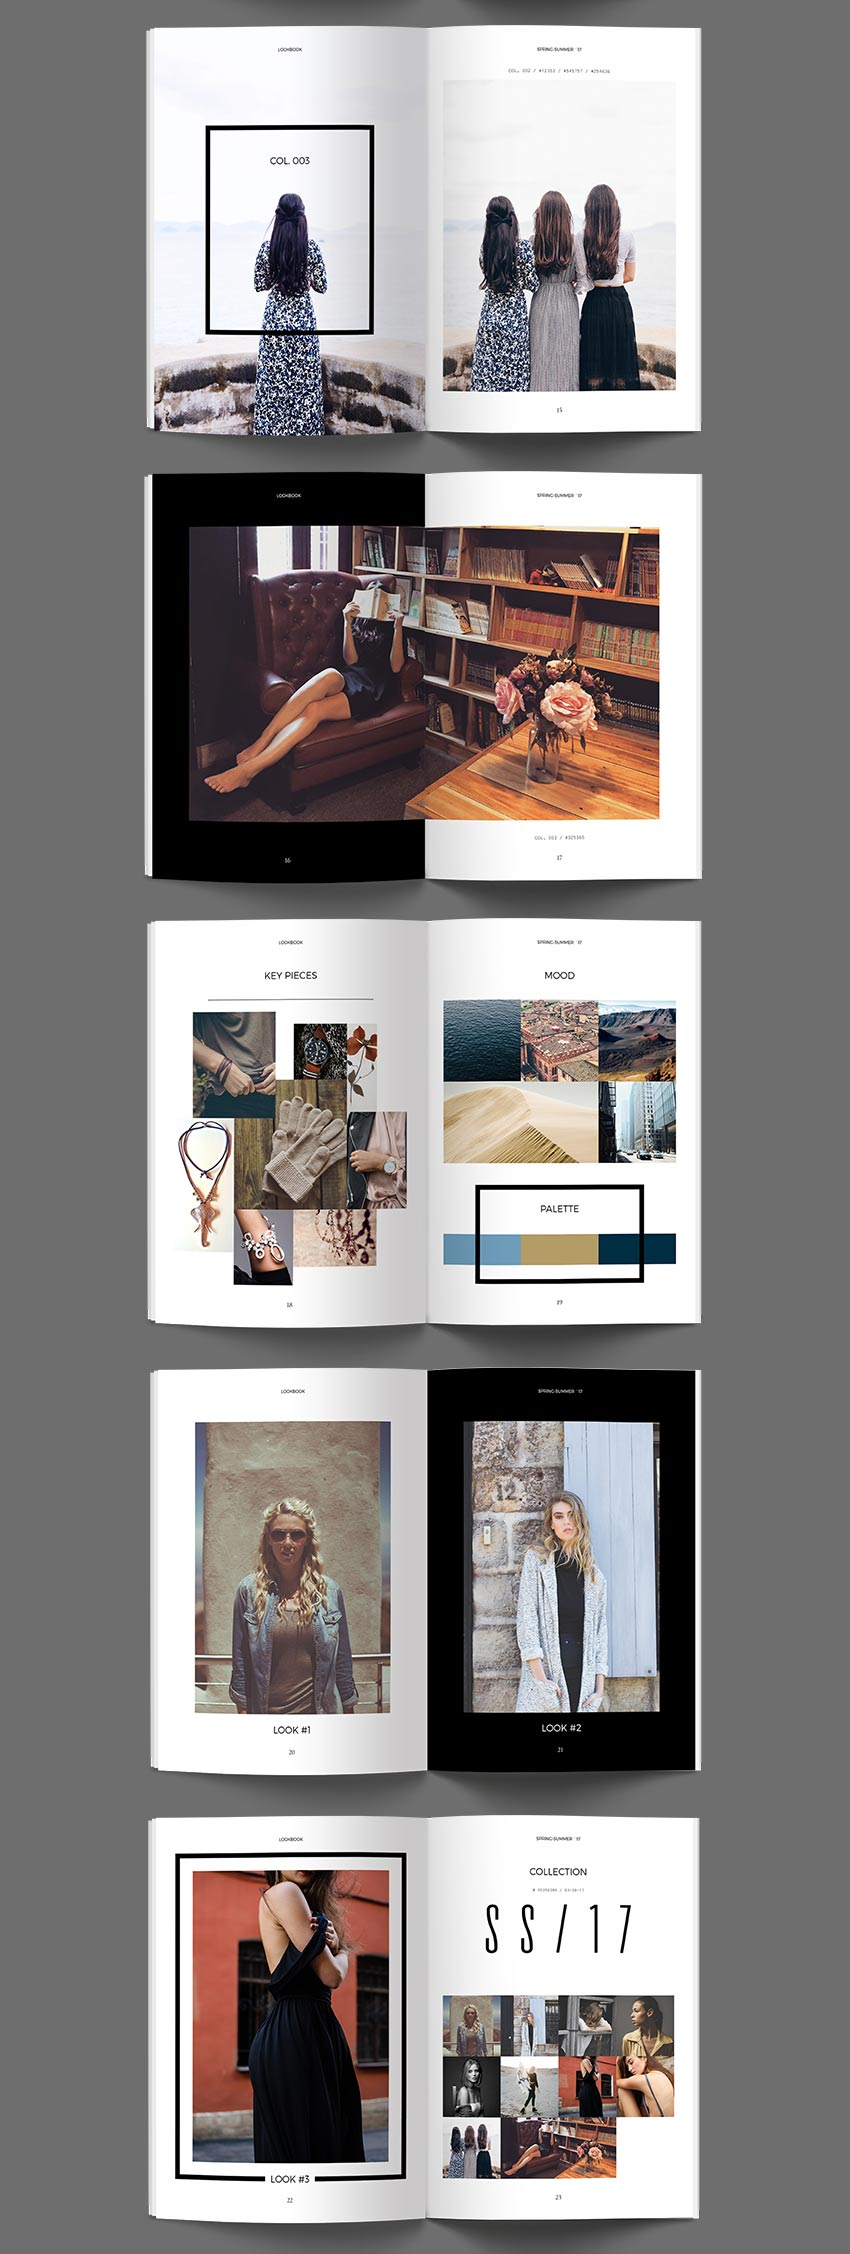 Lookbook InDesign Template